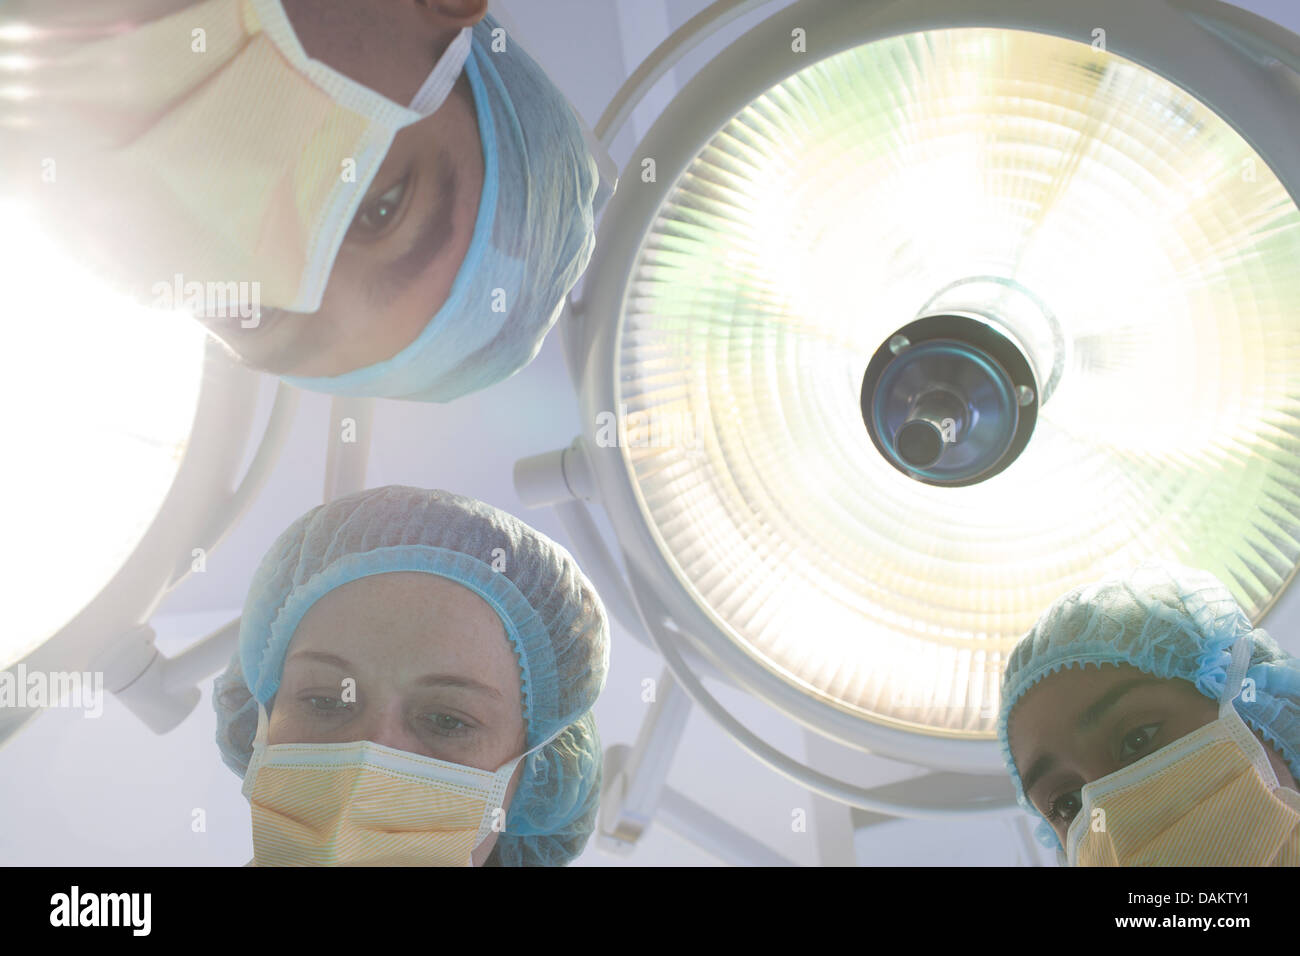 Surgeons bent over patient on operating table - Stock Image